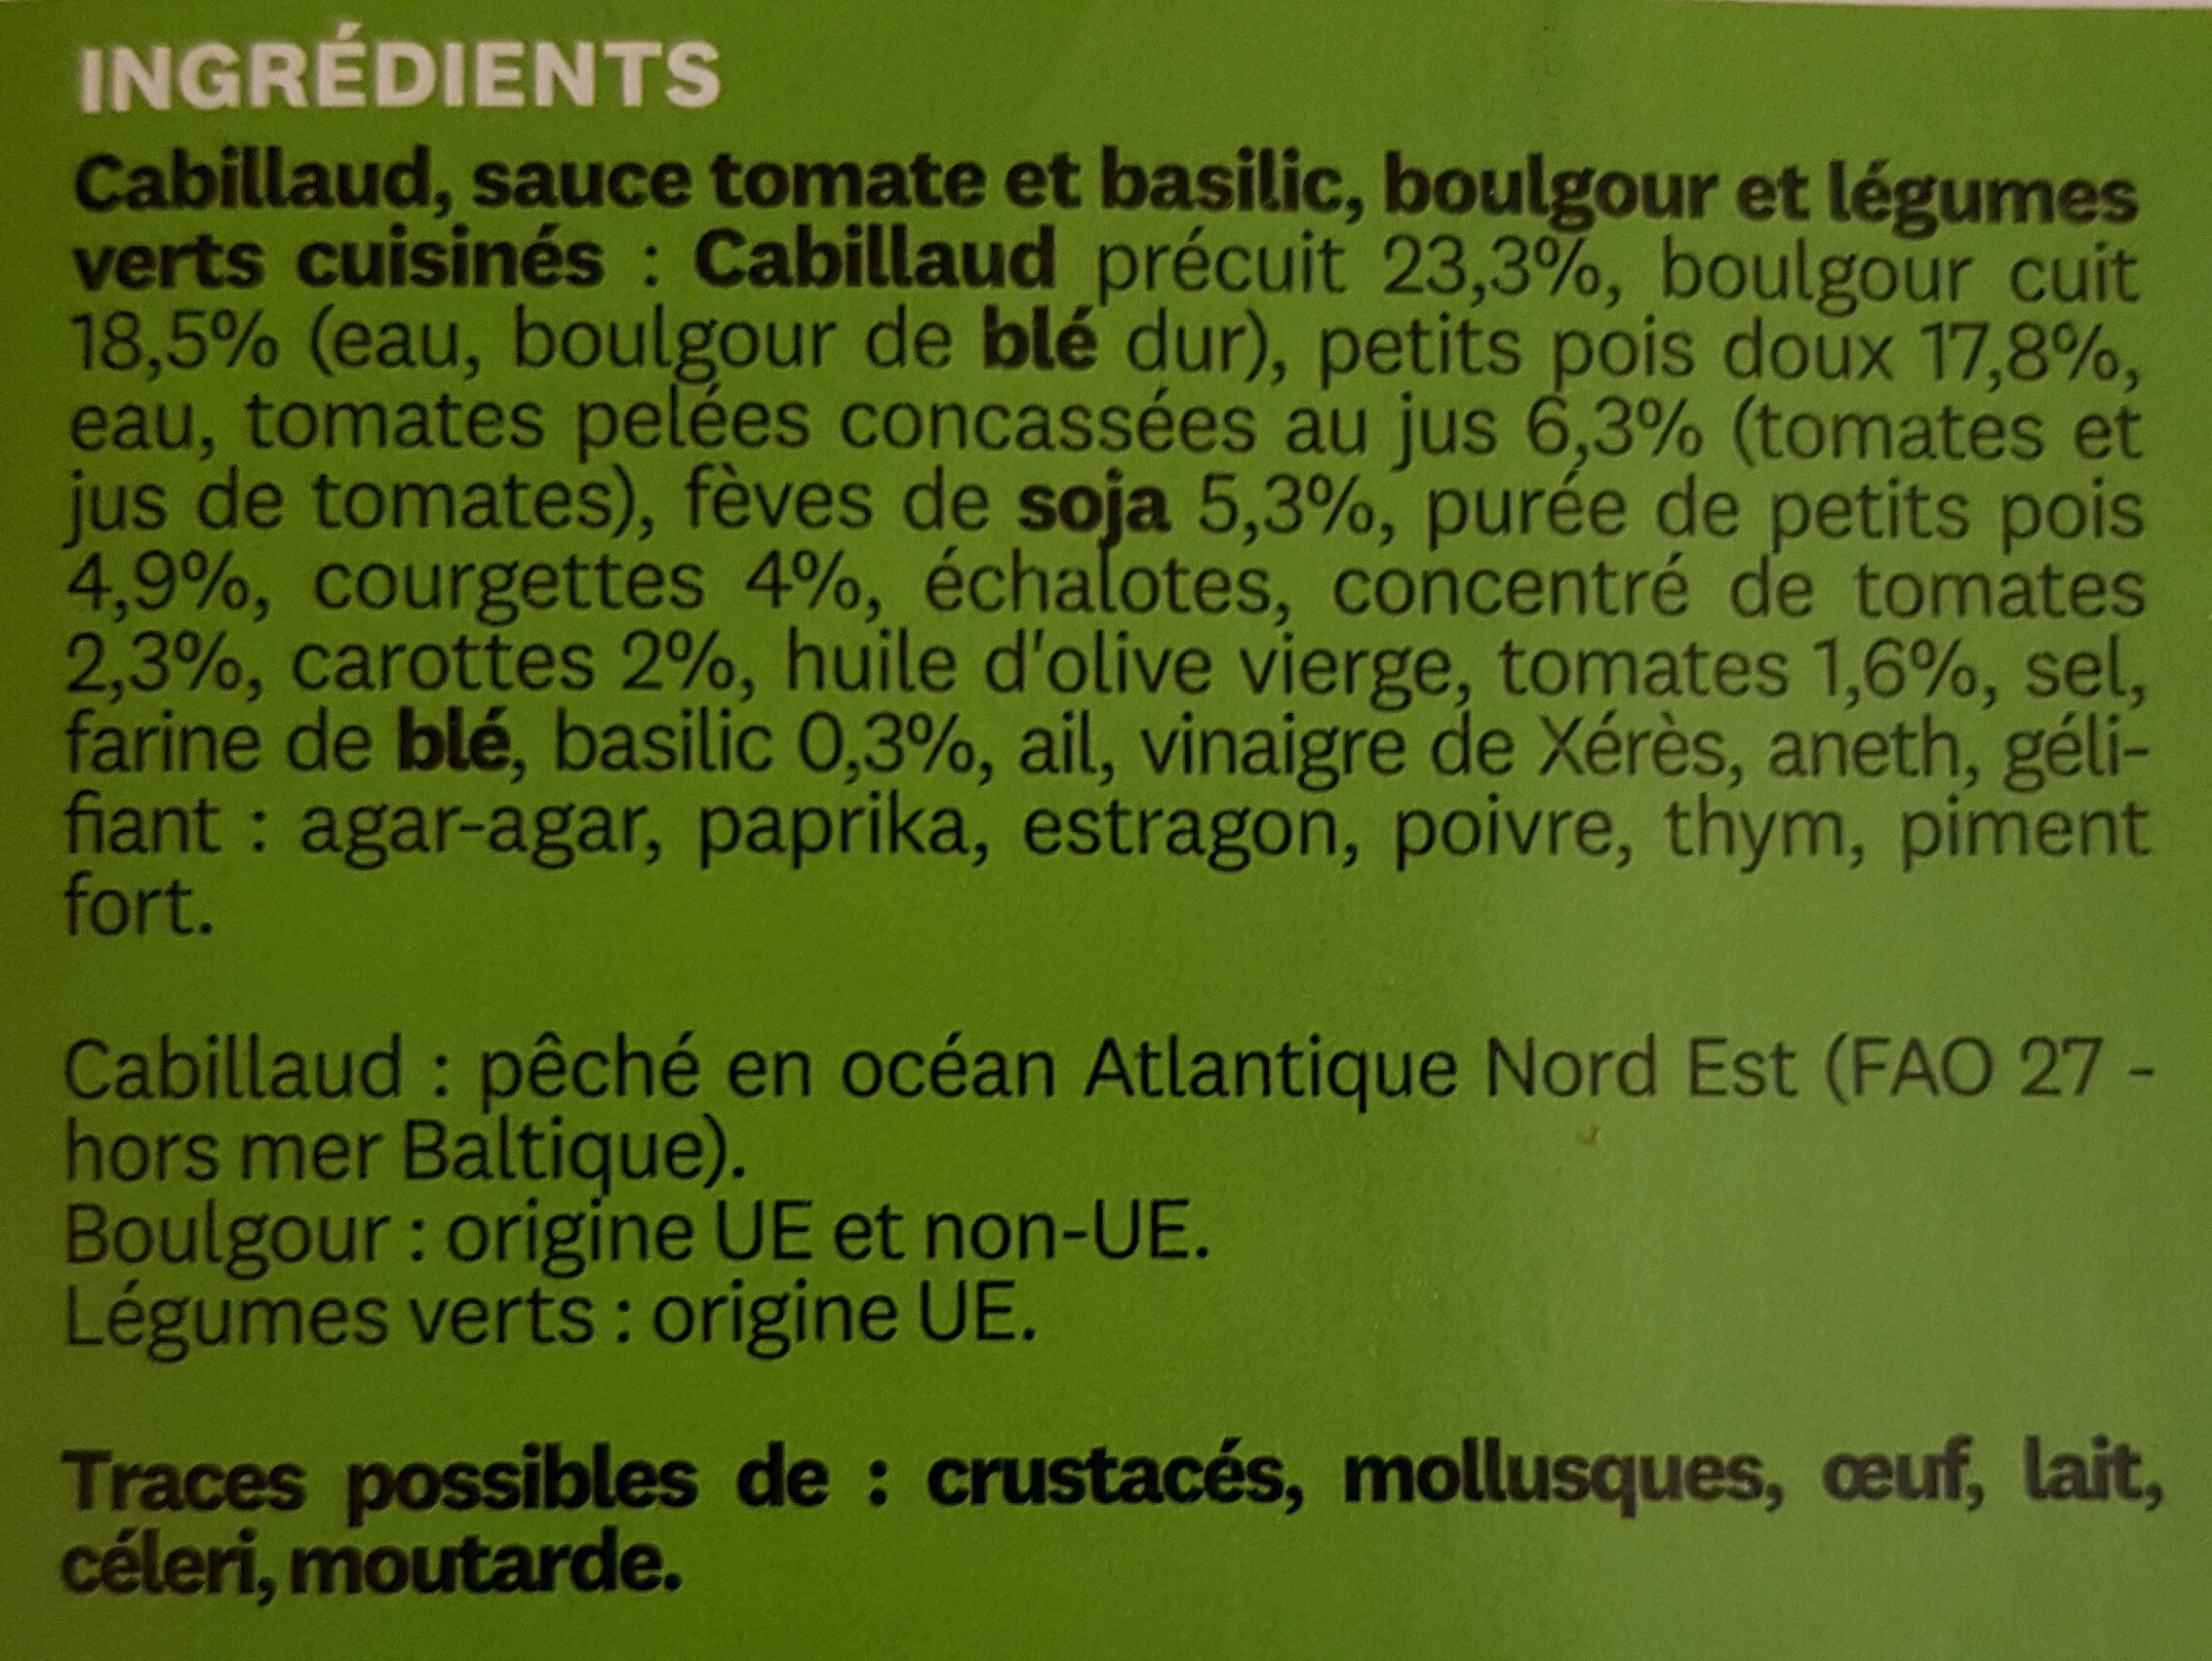 Cabillaud sauce tomate et basilic - Ingredients - fr